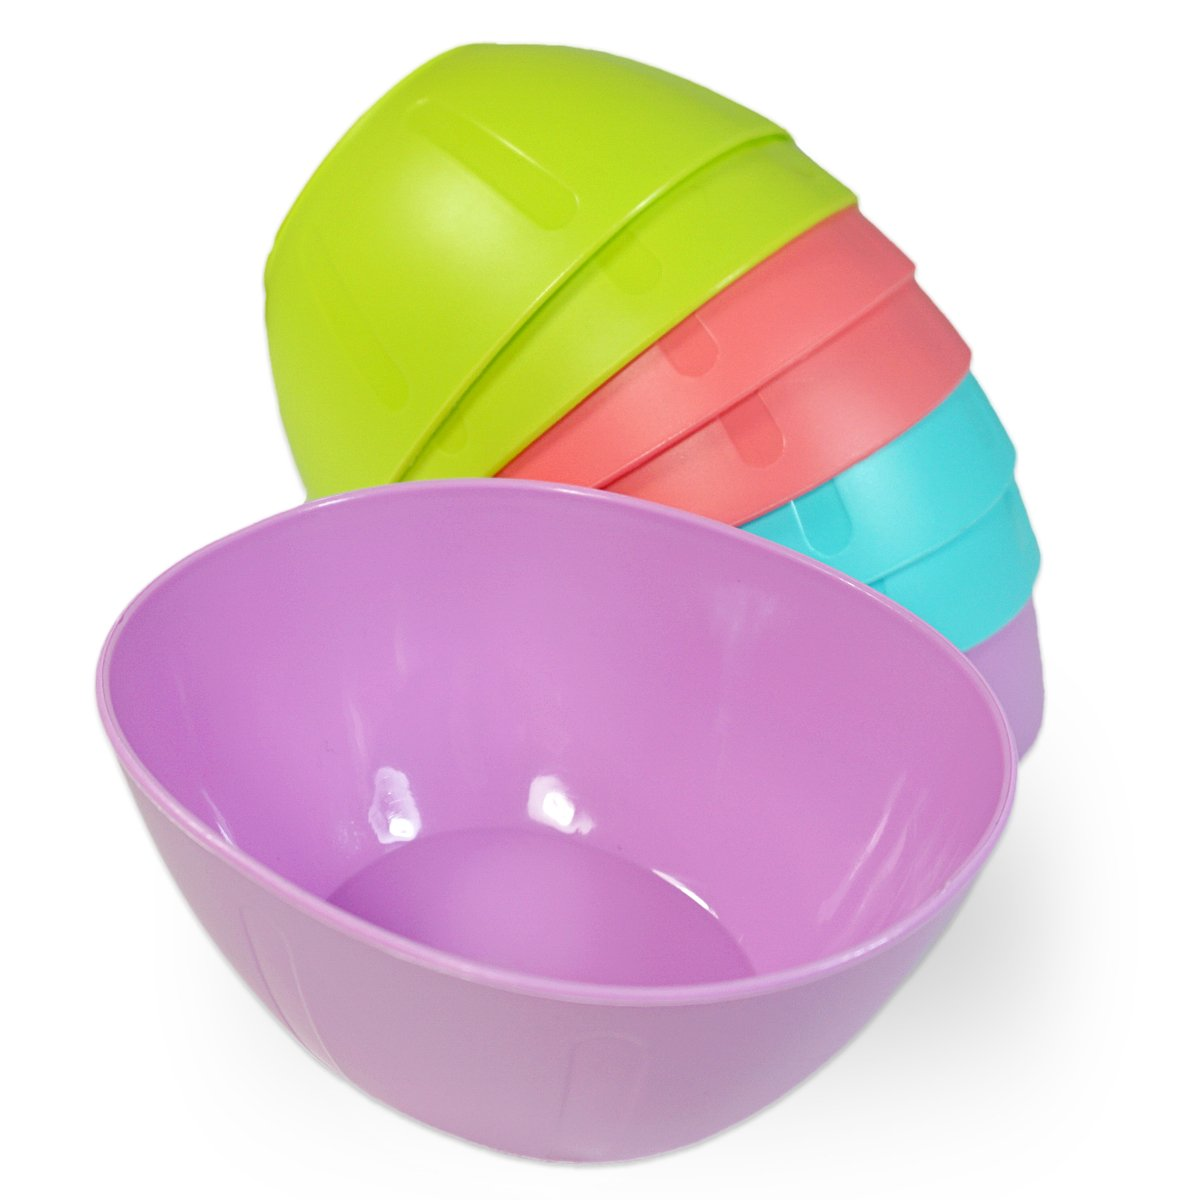 Set of 8 Small Plastic Serving Baby Bowls in Oval Shape and Assorted Colors. Microwavable Dishwasher Safe BPA-Free. Great for Kids Toddlers Cereal, Chips, Snack, Side, Dish, Dip, Soup, Candy bowls KS70133